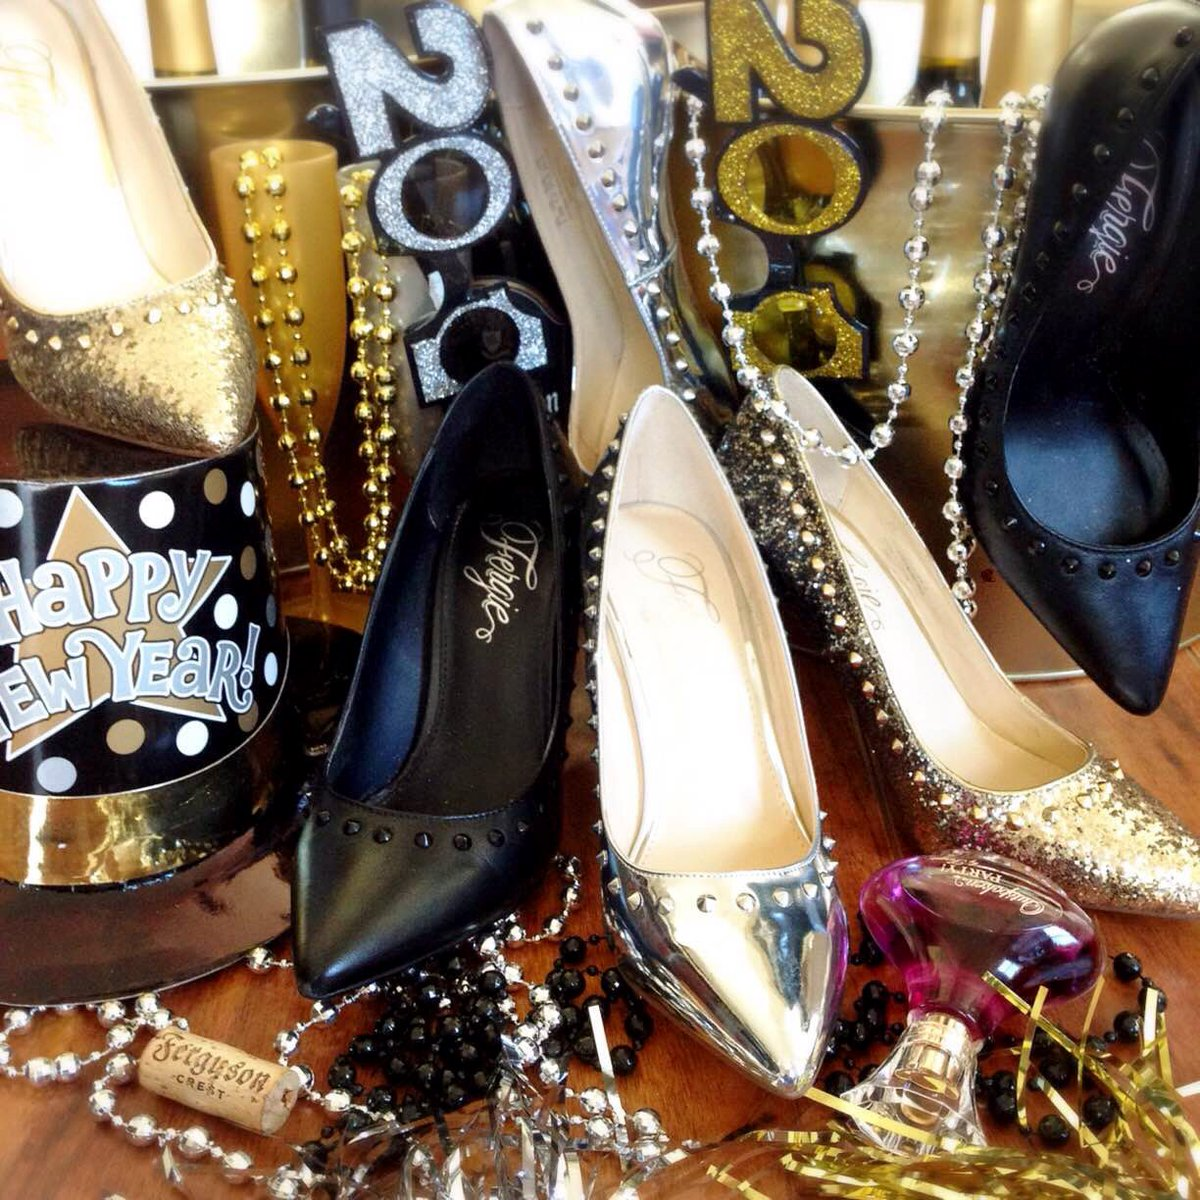 RT @FergieFootwear: #LastDay! #SAVE 20% on #FergieFave HELIX & HELIX 2 #pumps!#NYE #shoesale #fergie #partyshoes https://t.co/VAb8hF9BFe ht…